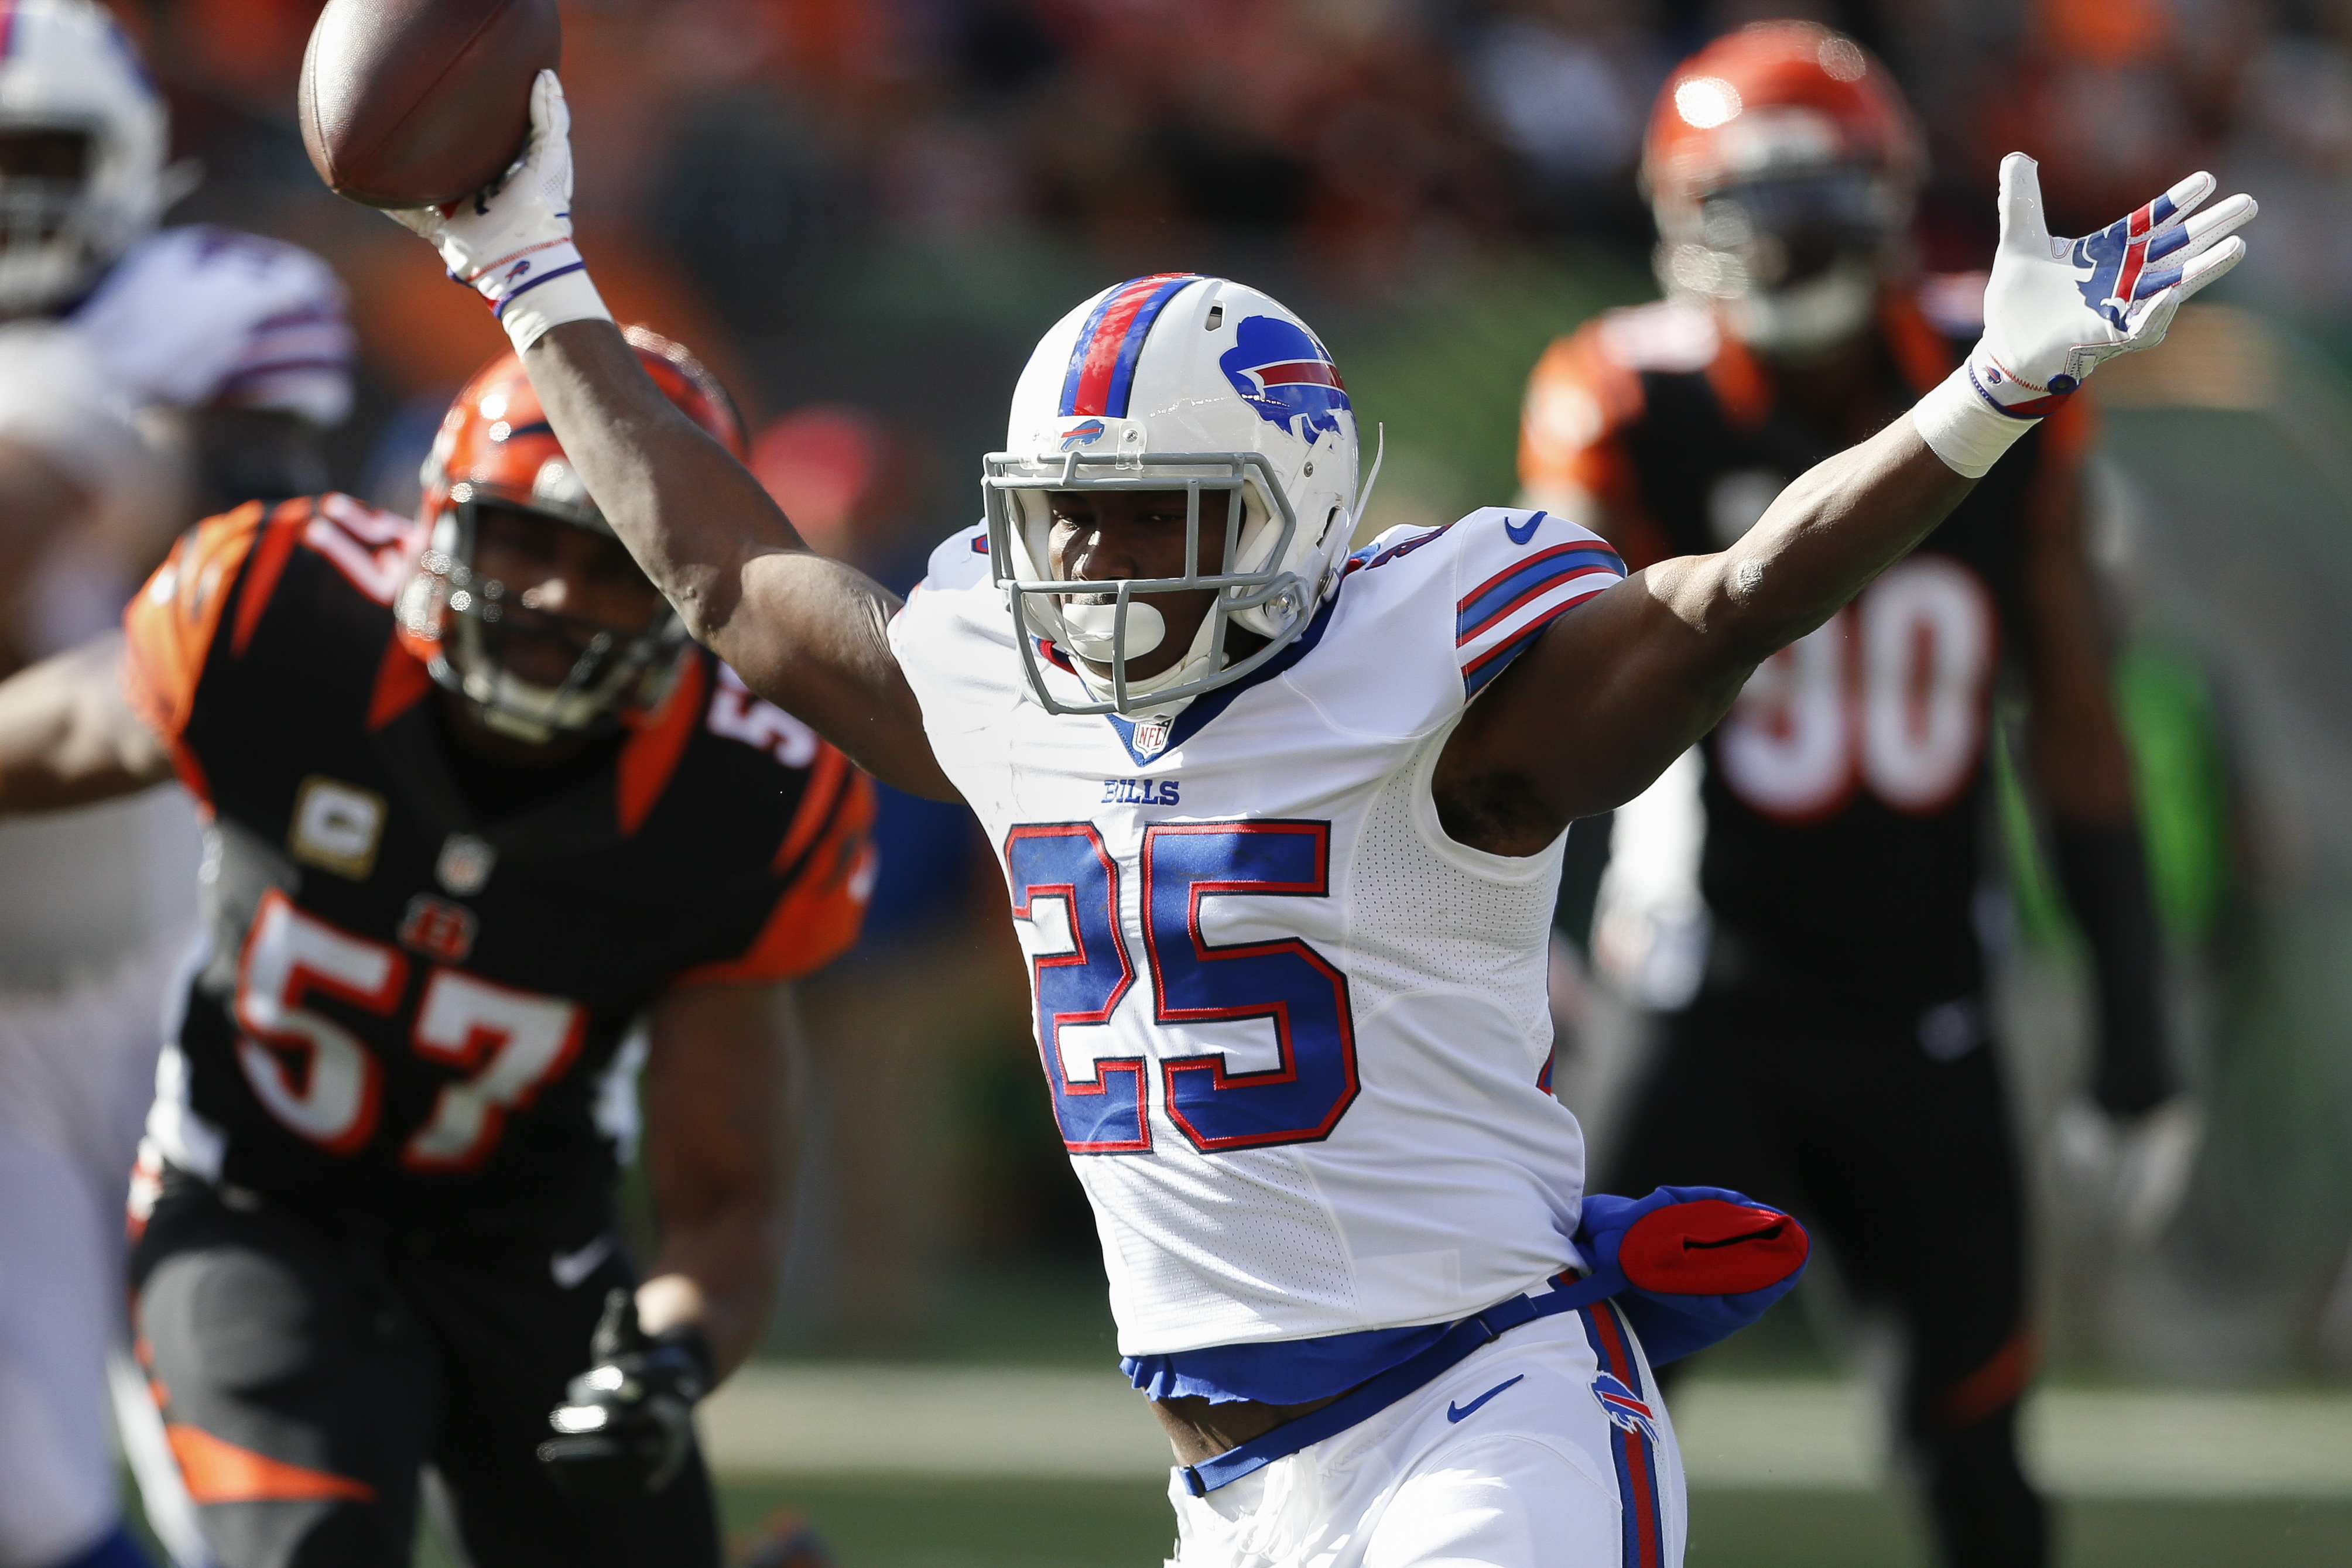 Buffalo Bills running back LeSean McCoy (25) celebrates as he runs in a touchdown in the first half of an NFL football game against the Cincinnati Bengals, Sunday, Nov. 20, 2016, in Cincinnati. (AP Photo/Gary Landers)